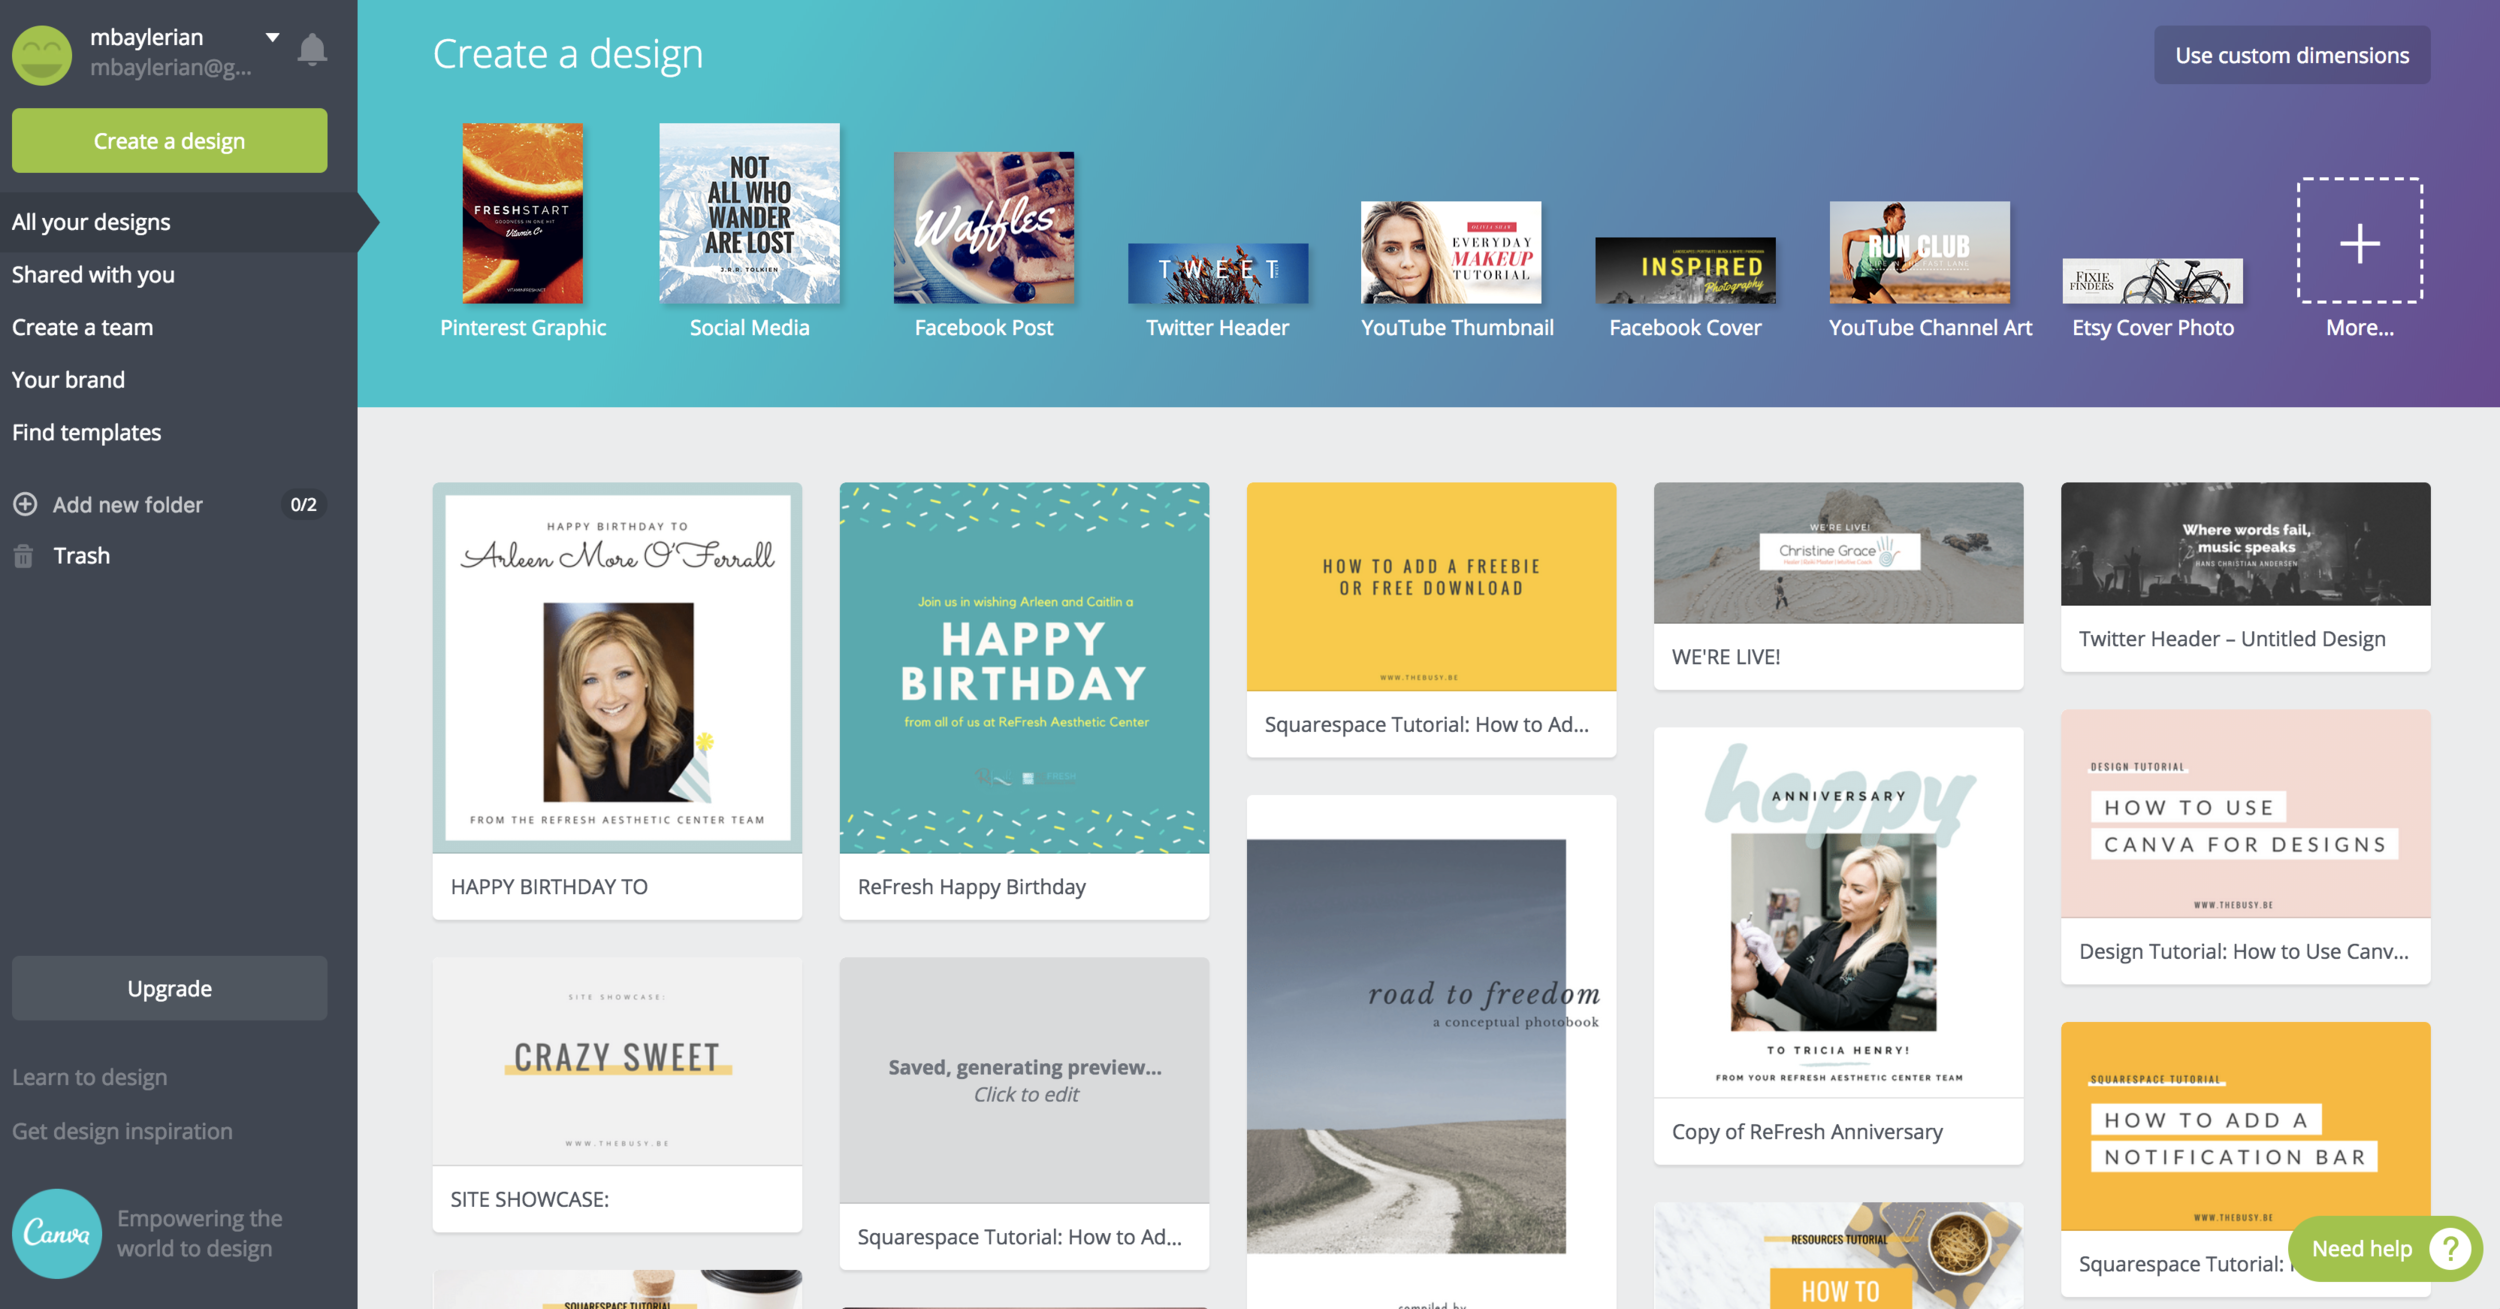 The Busy Bee How To Use Canva To Create Designs For Your Business Free Tutorial